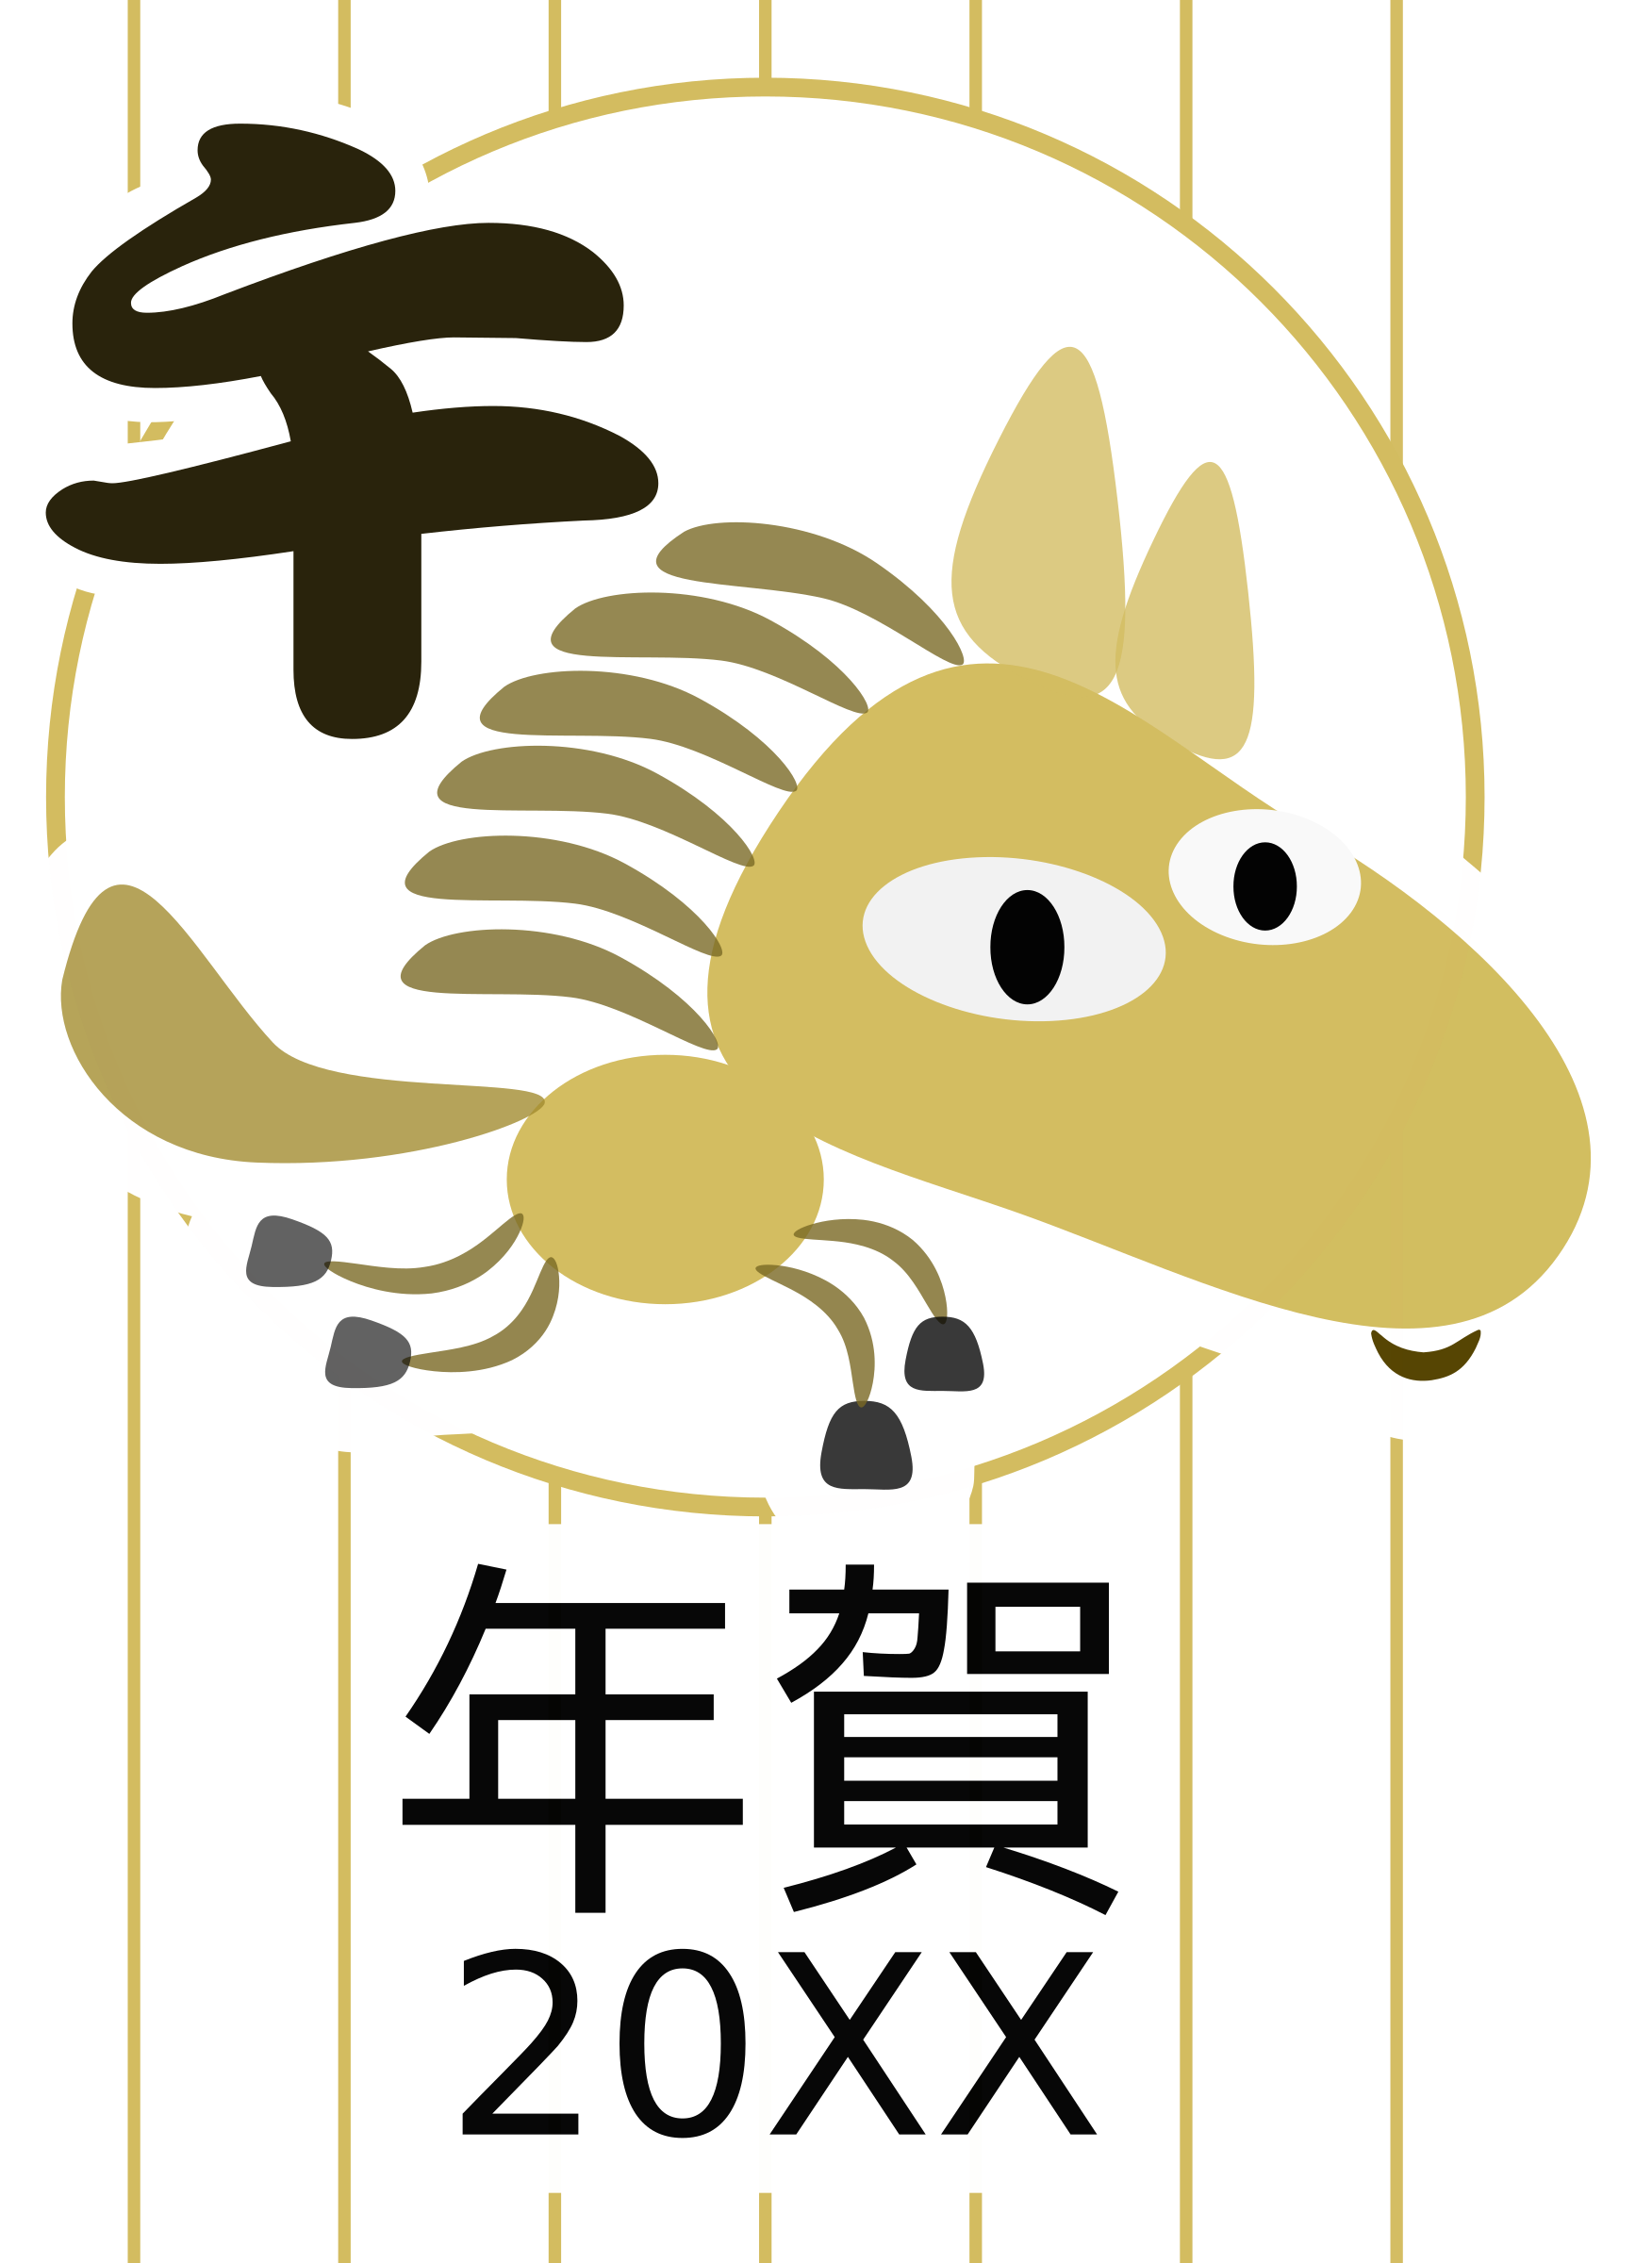 Chinese zodiac horse - Japanese version by uroesch